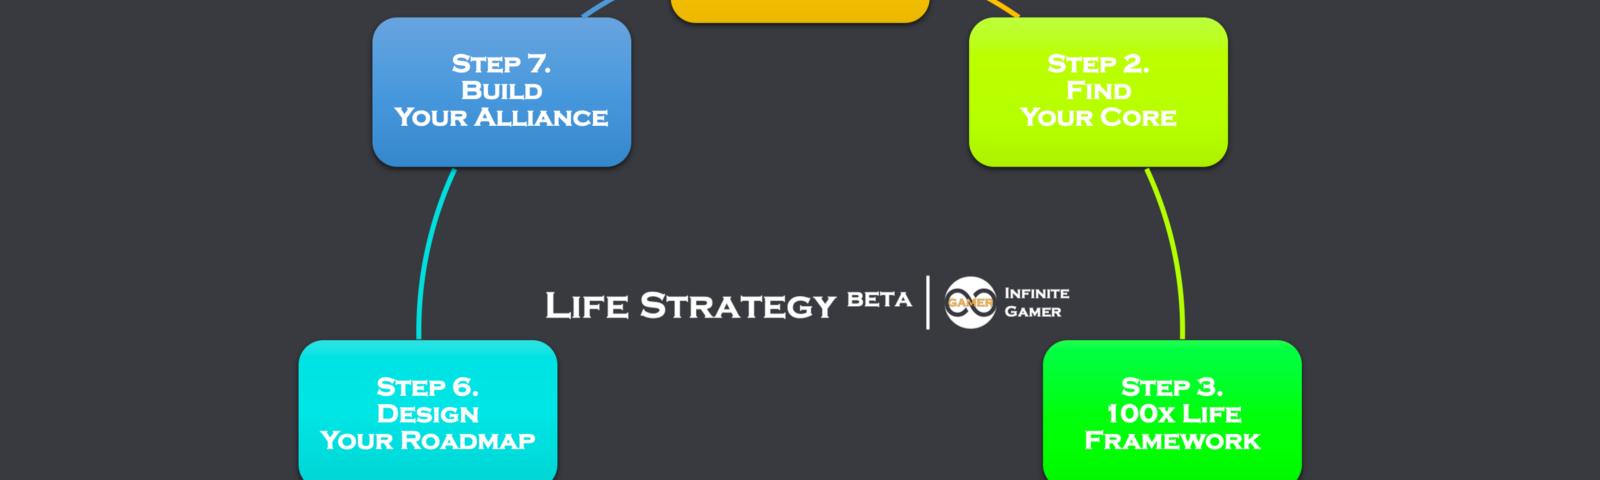 Life Strategy Beta in Infinite Game